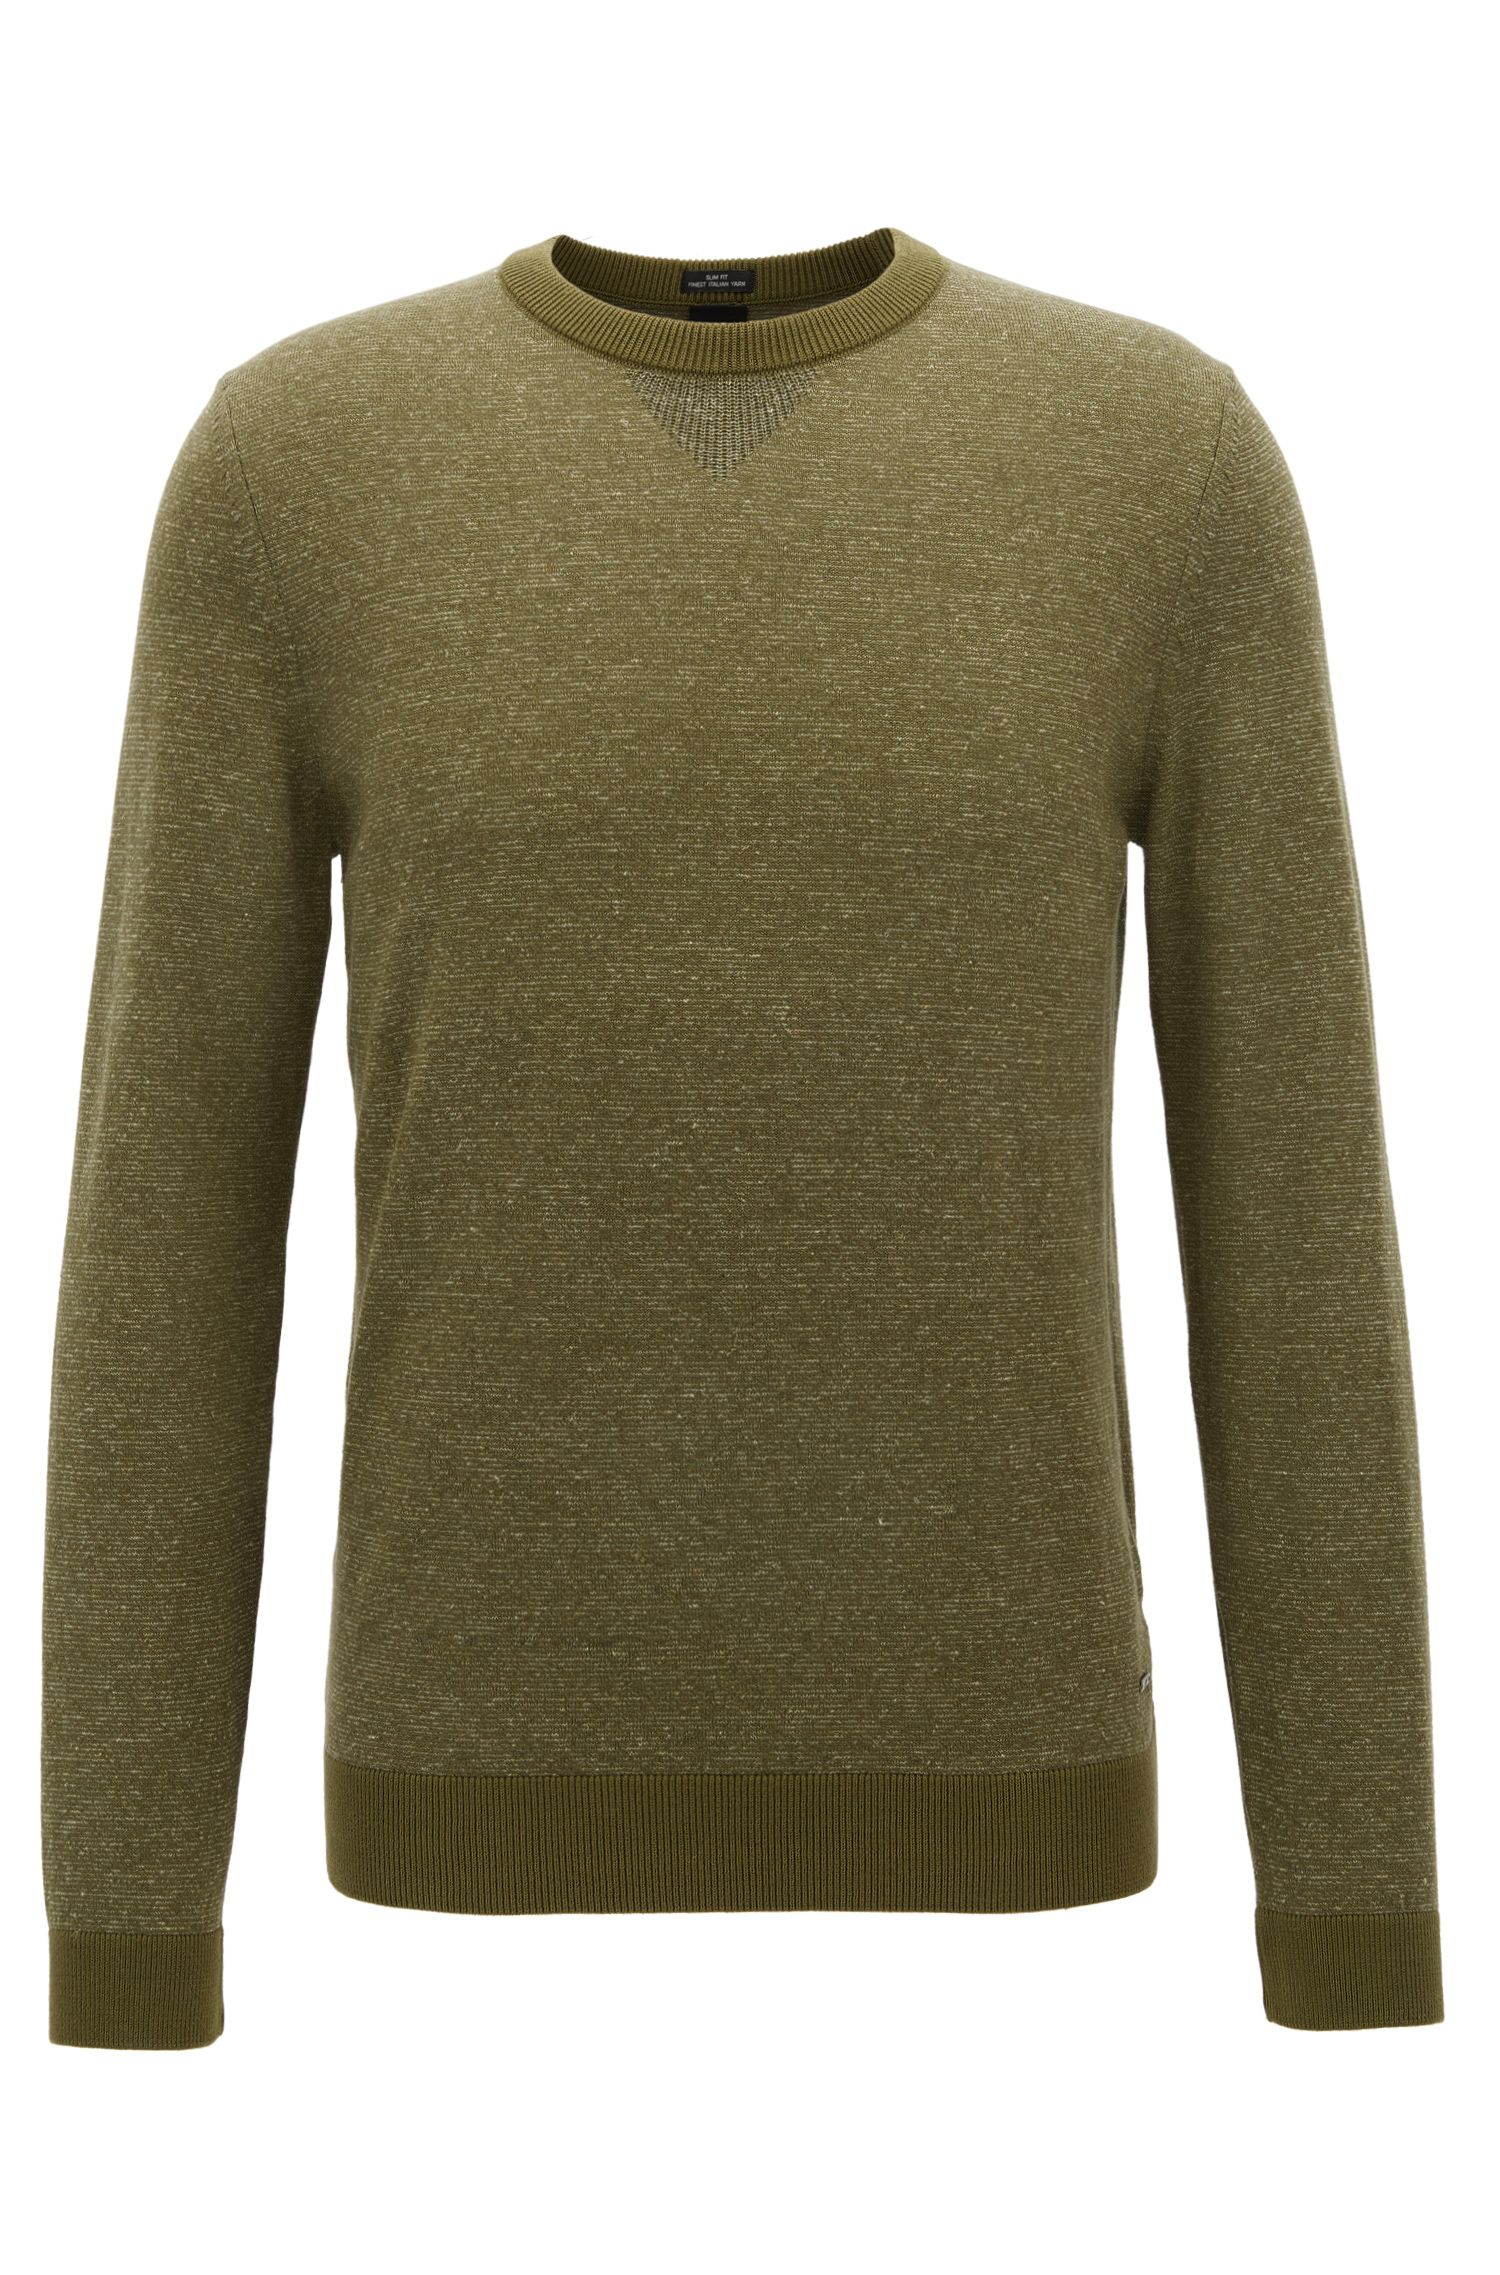 Slim-fit sweater in a mouliné cotton blend